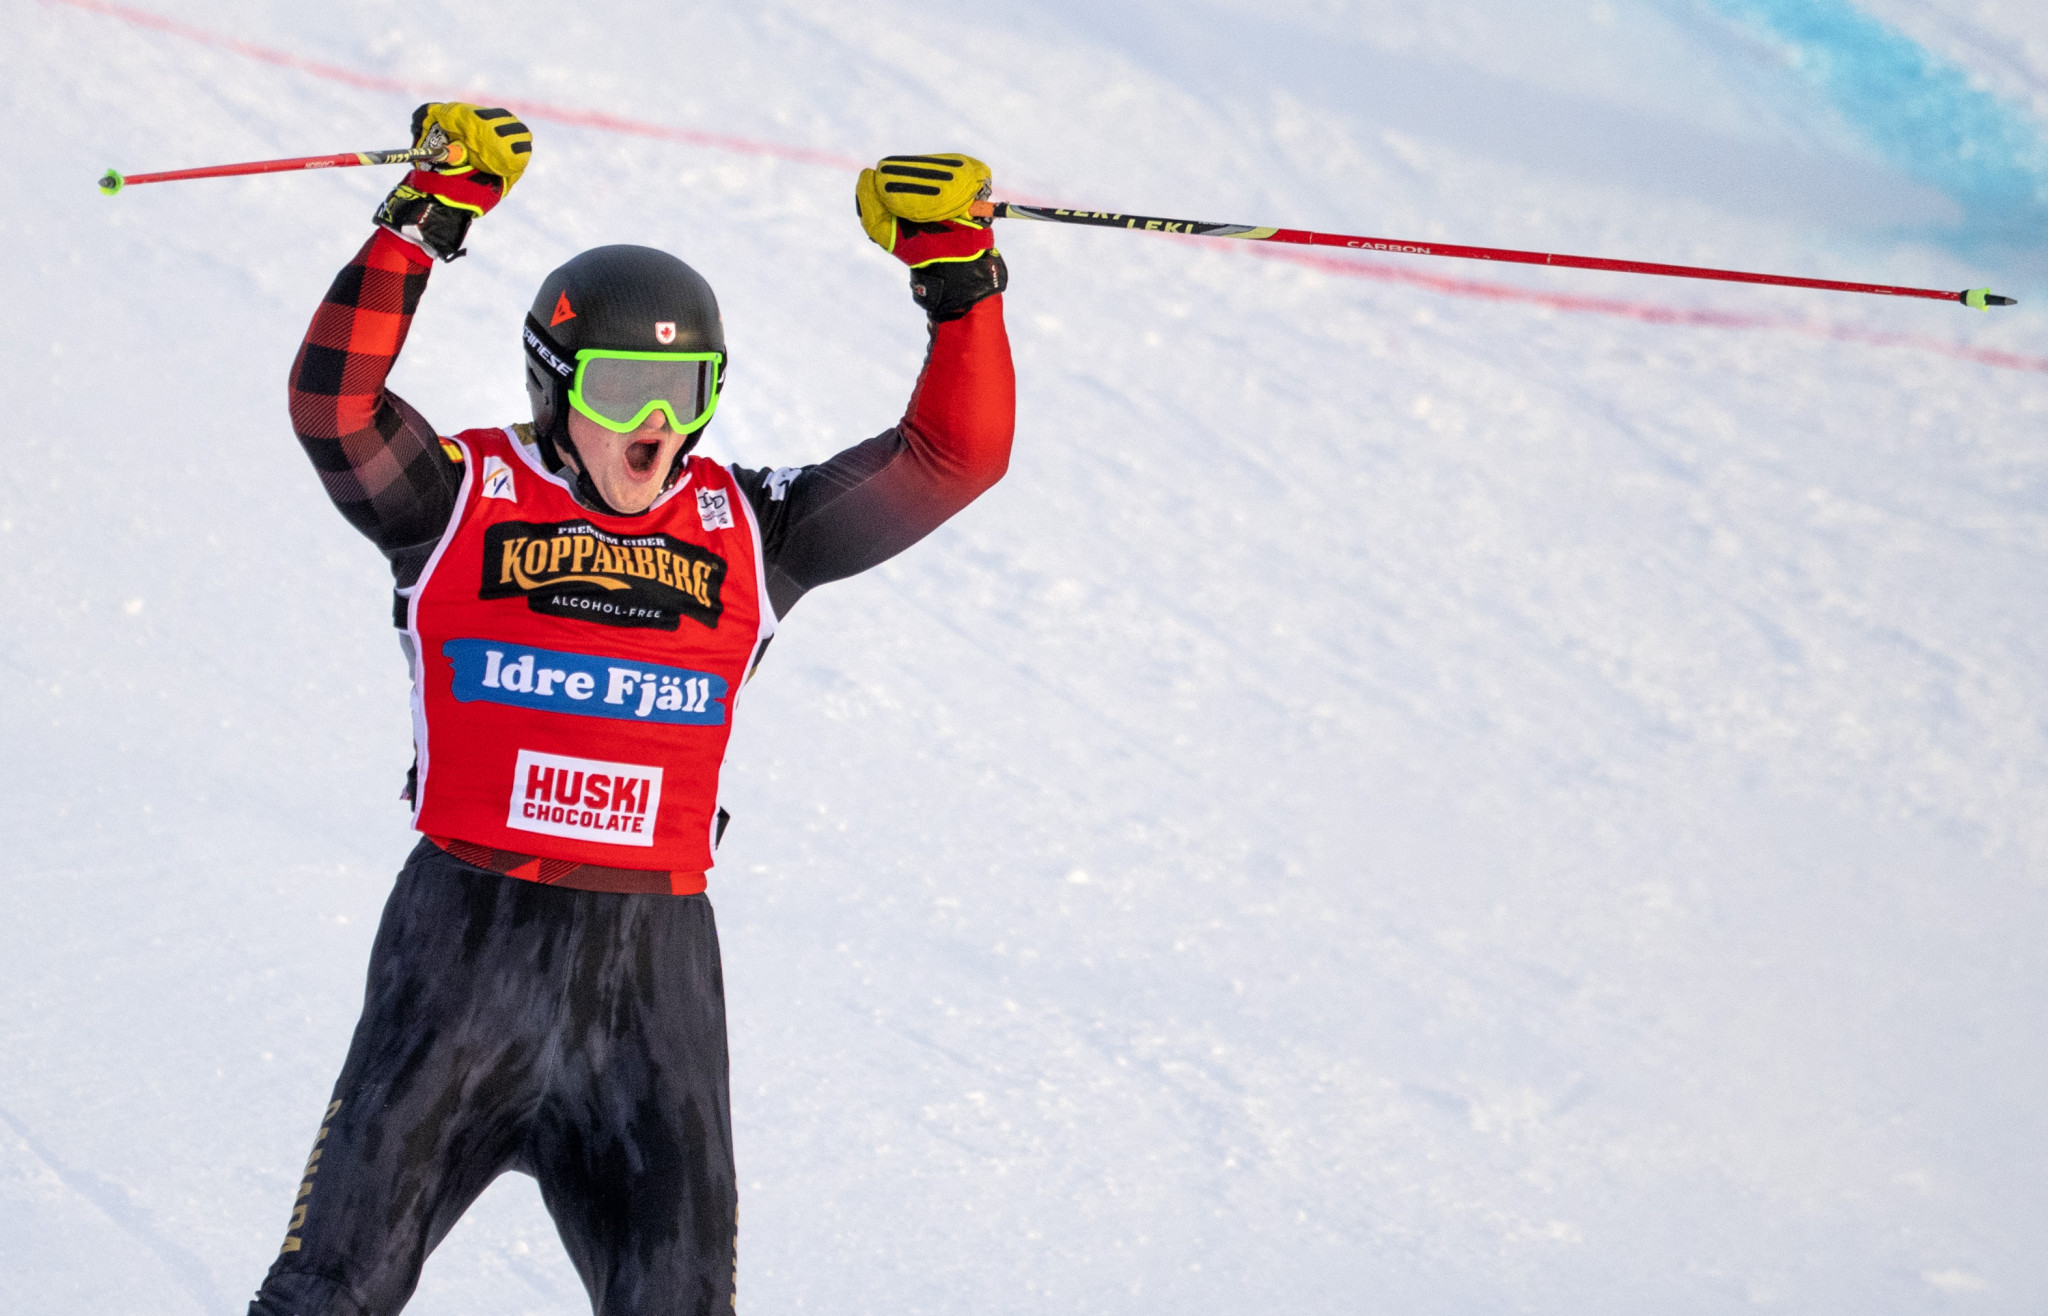 Reece Howden is leading the men's FIS Ski Cross World Cup standings ©Getty Images